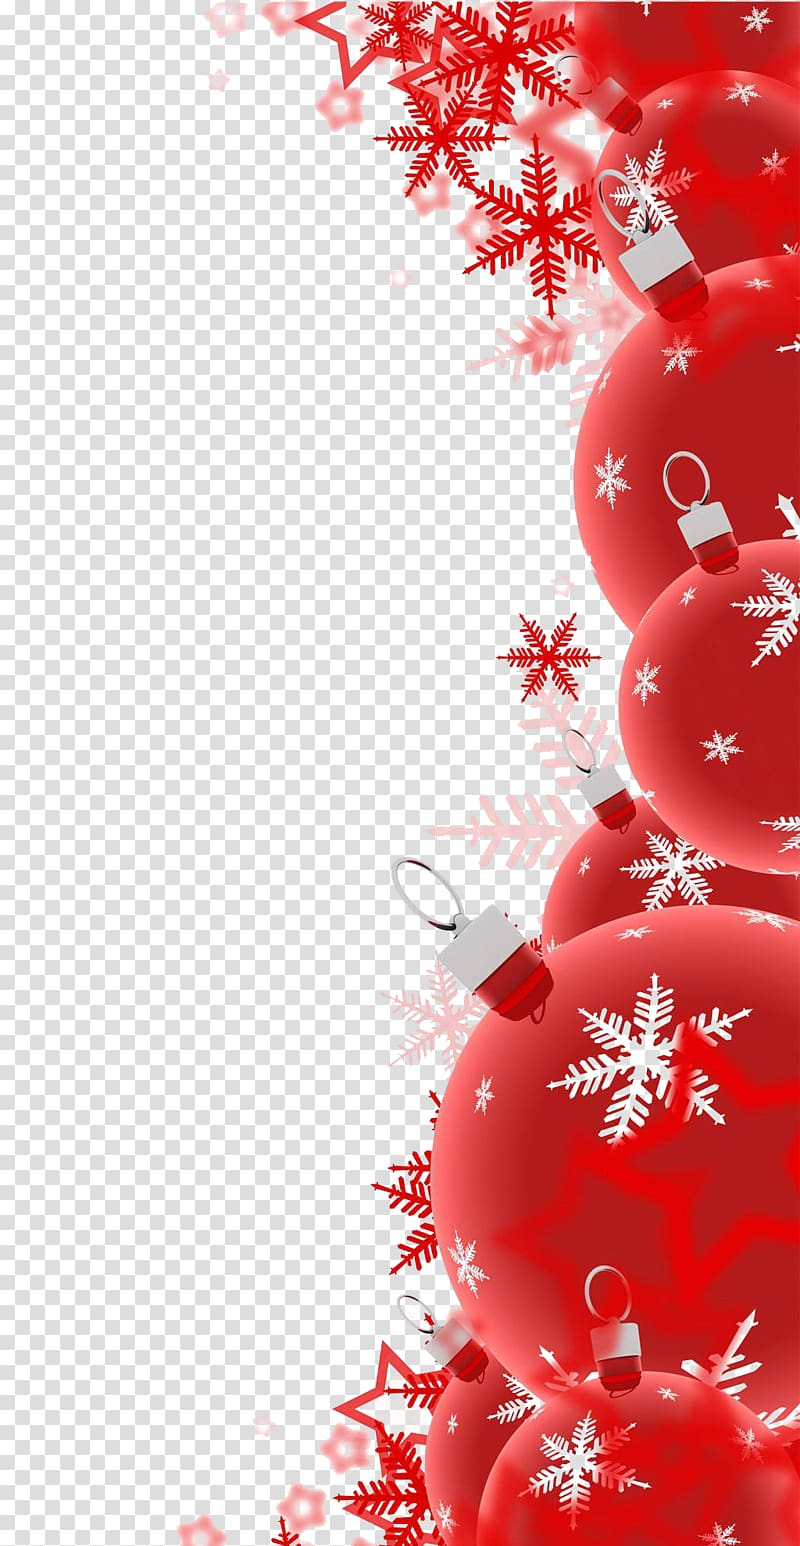 Red decoration clipart clipart free library Christmas decoration Santa Claus , Red Christmas decoration ... clipart free library